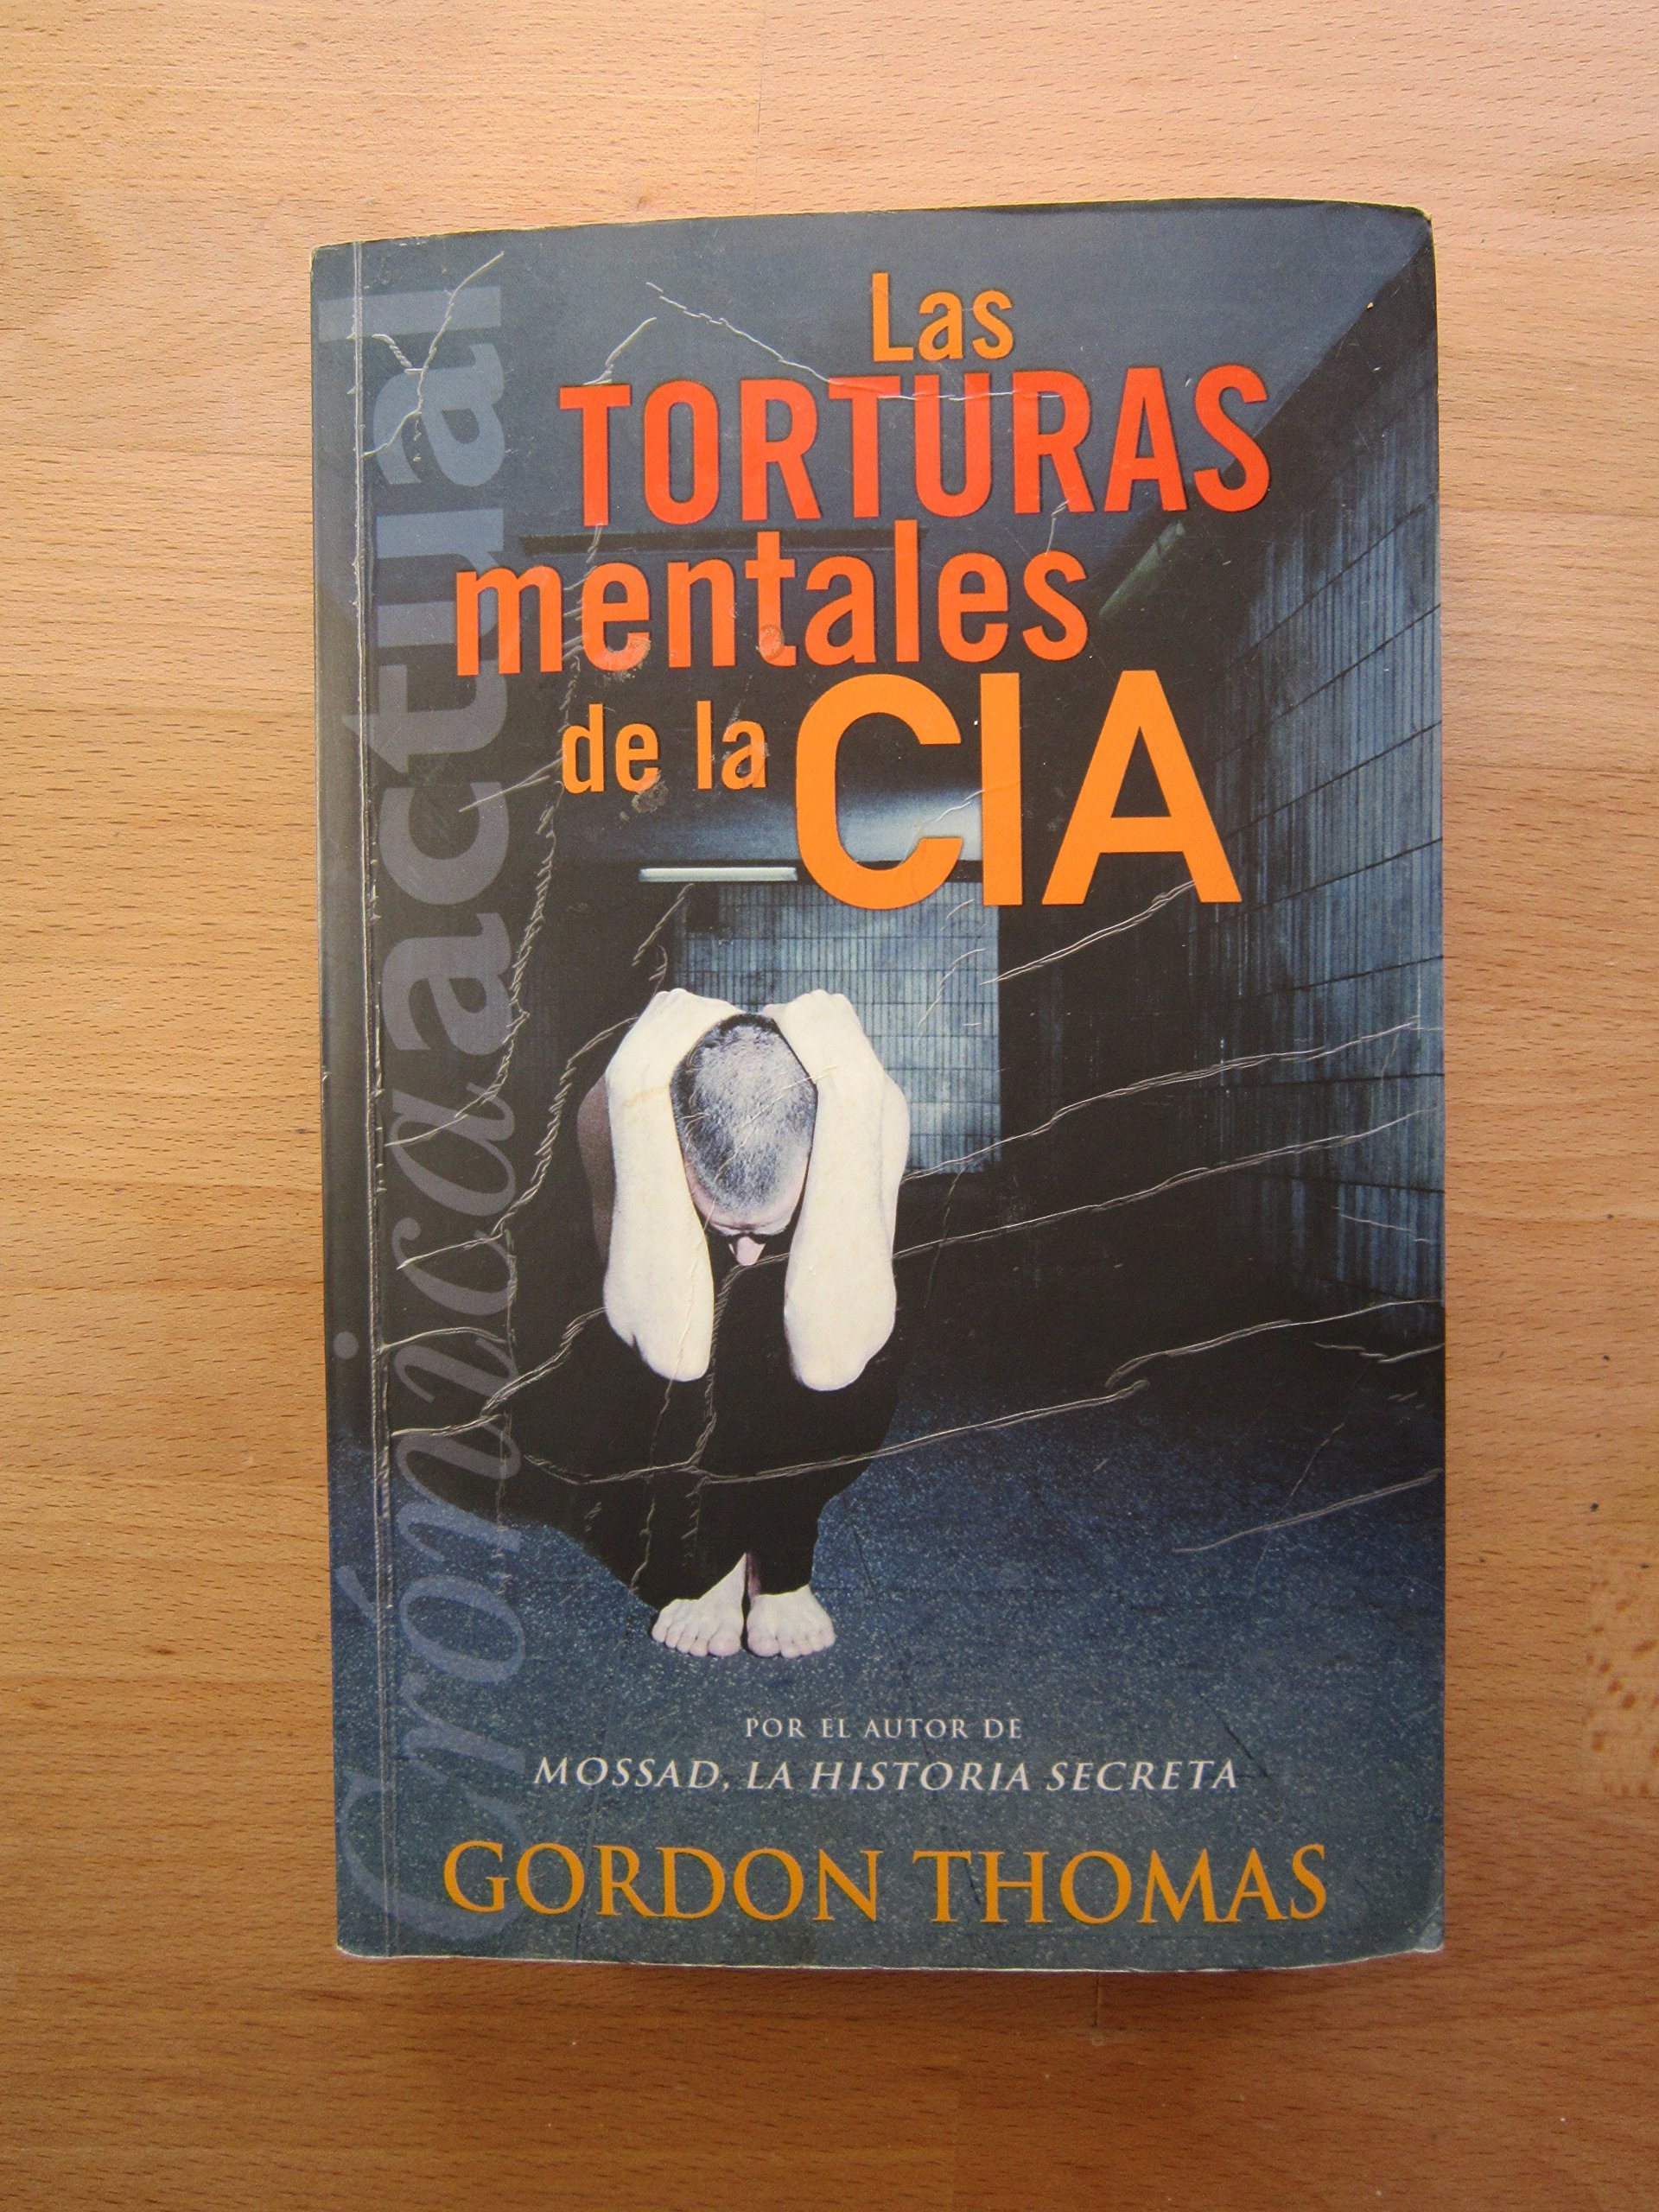 Las torturas mentales de la CIA: Amazon.es: THOMAS, GORDON, THOMAS ...